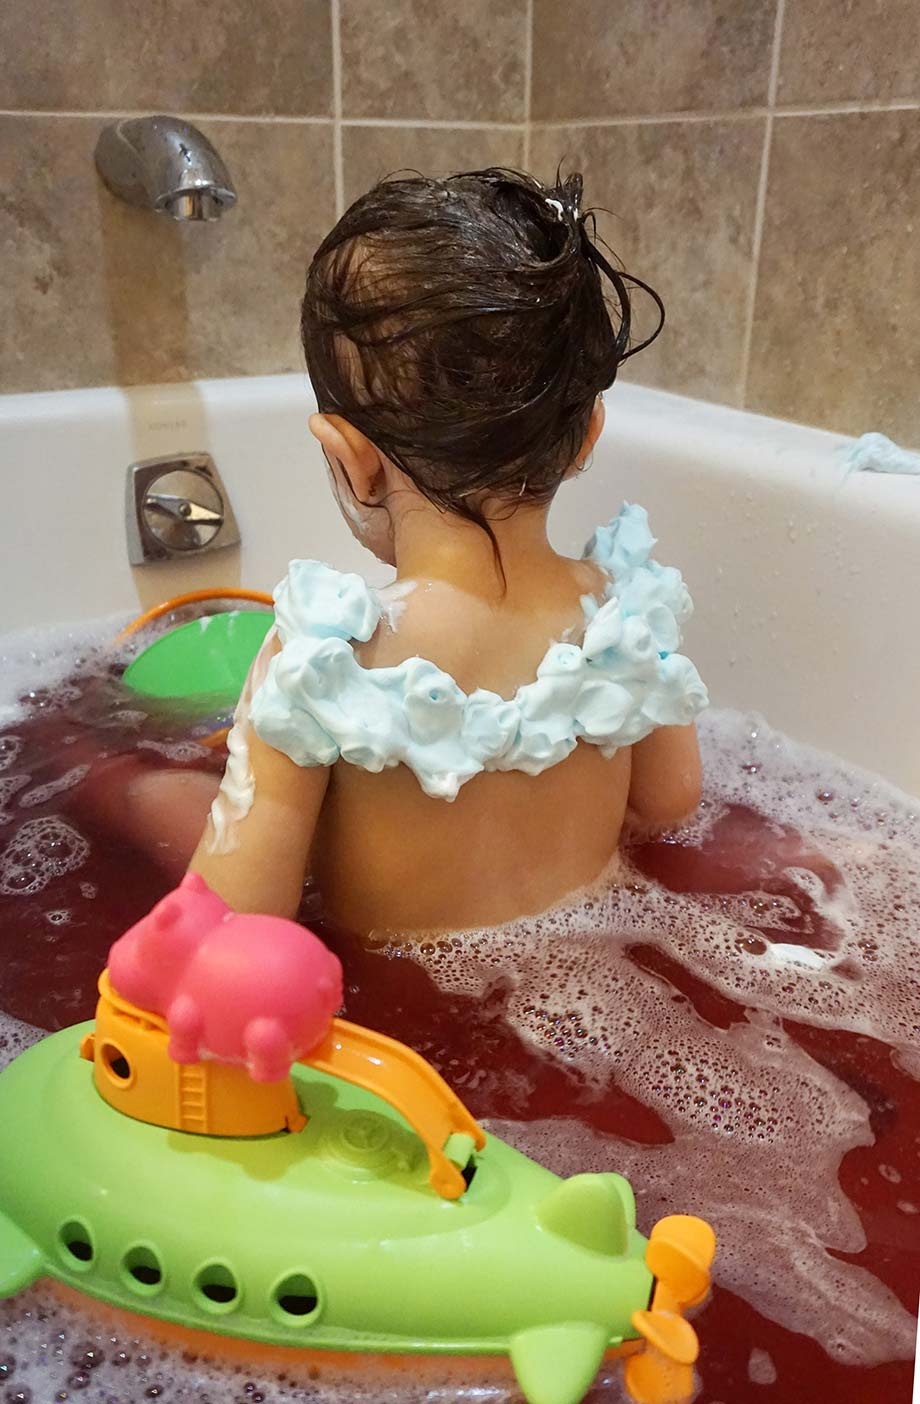 Ways for moms to make bath time more fun. Brought to you by Glitter and Bubbles.